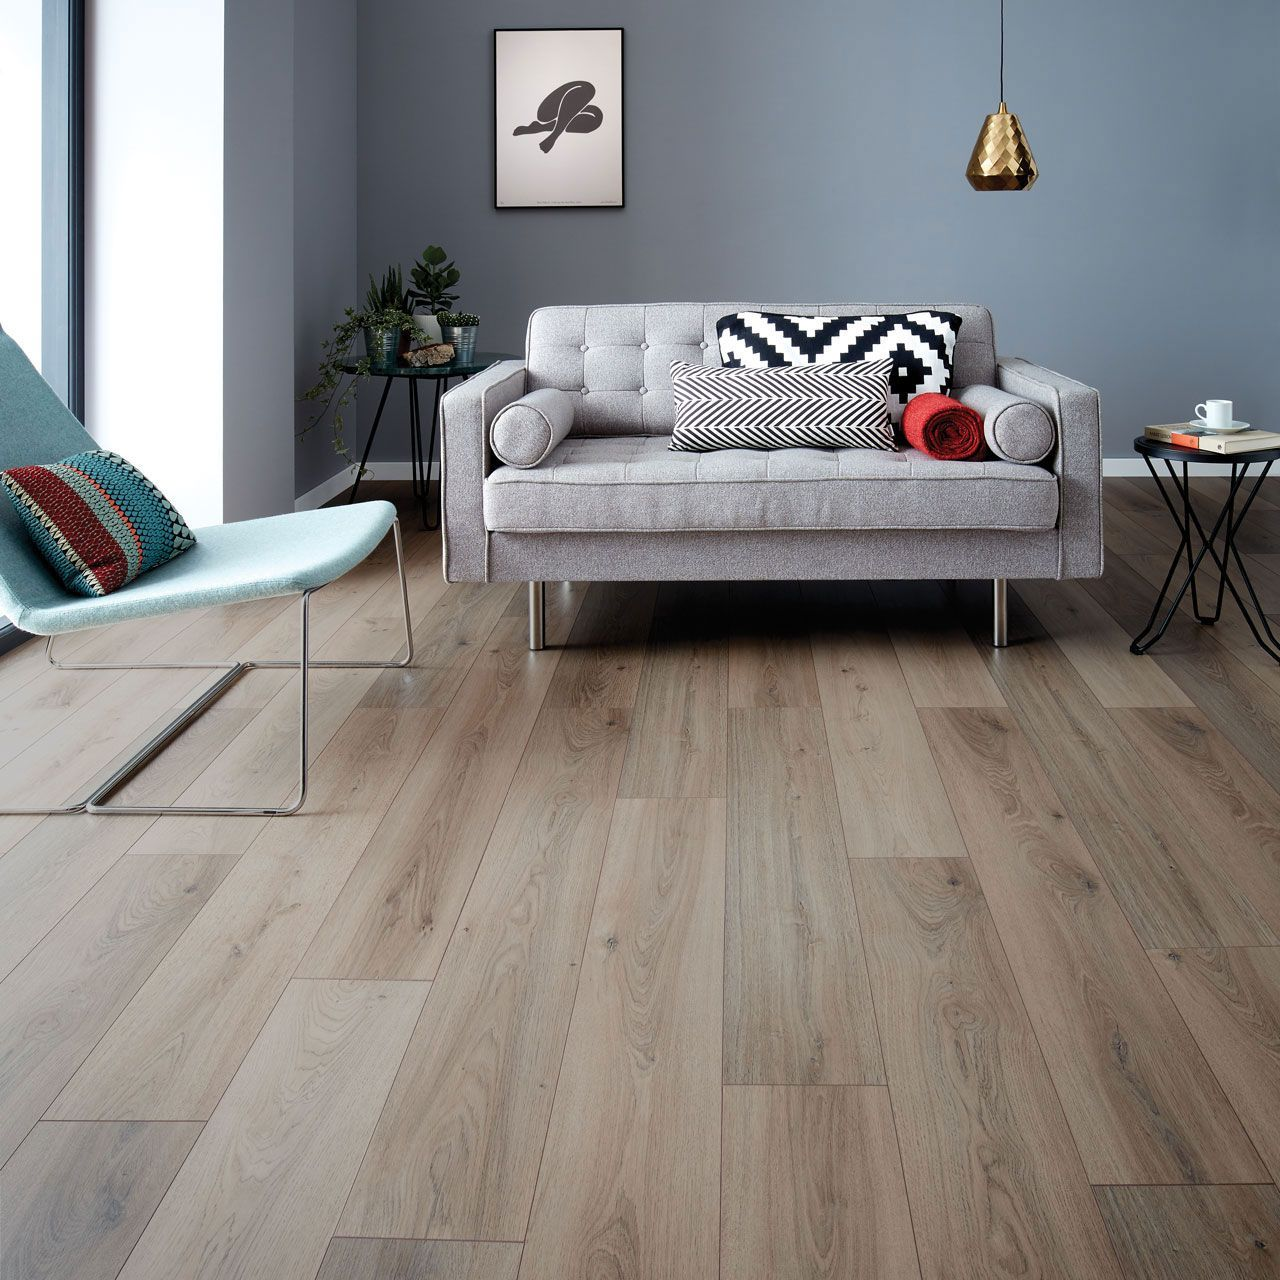 Wembury Nordic Oak Oak laminate flooring, Grey flooring